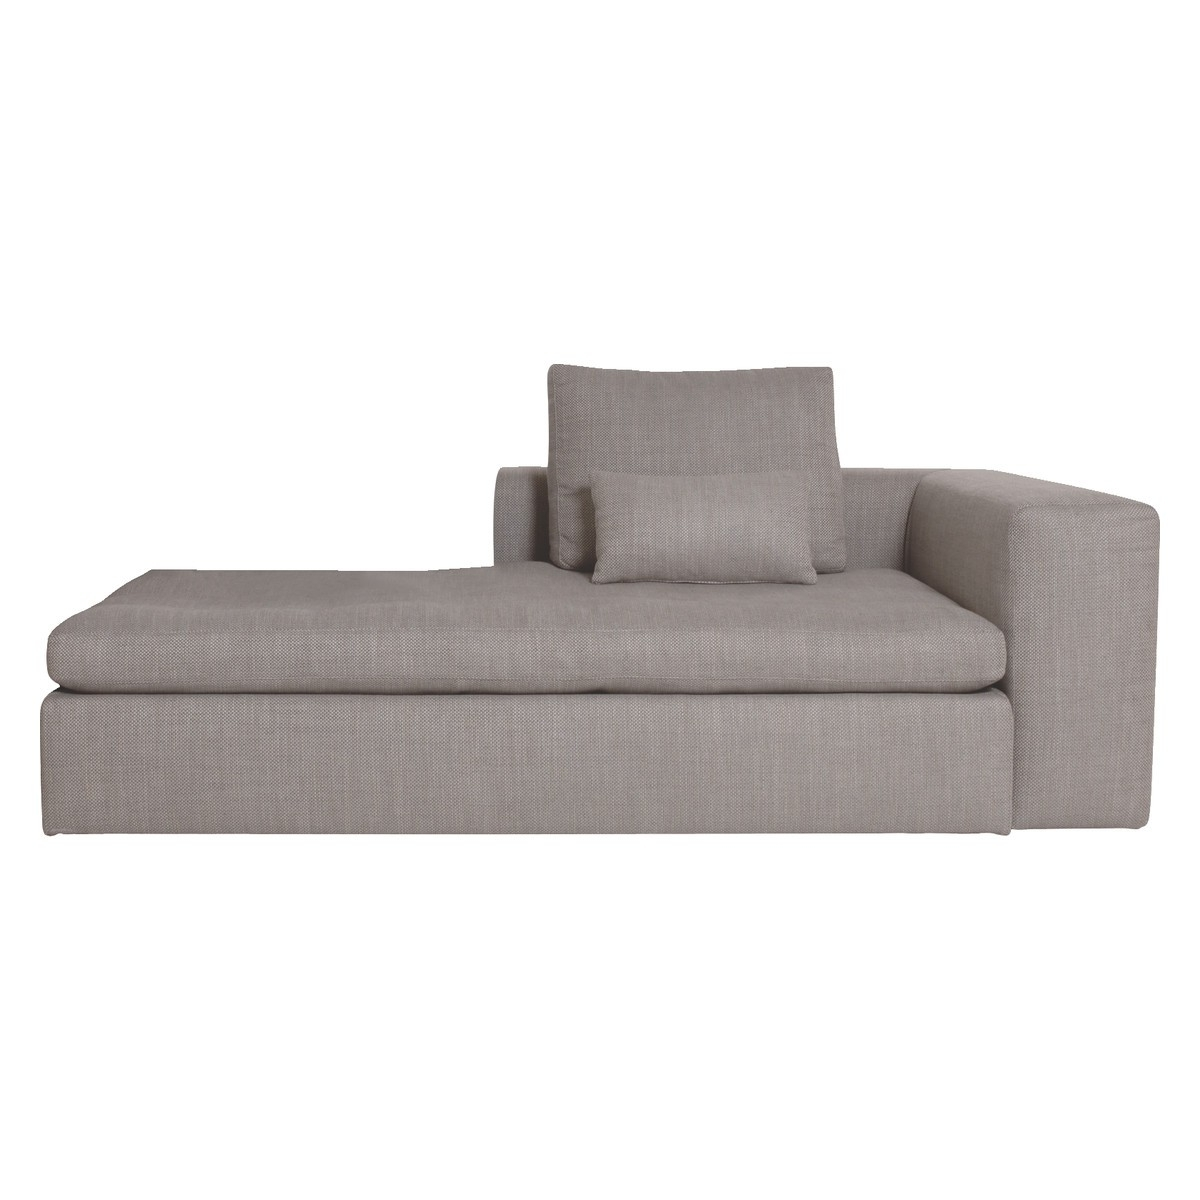 Widely Used Chaise Beds Intended For Sofas: Classic Meets Contemporary Chaise Sofa Bed For Ideal Living (View 15 of 15)